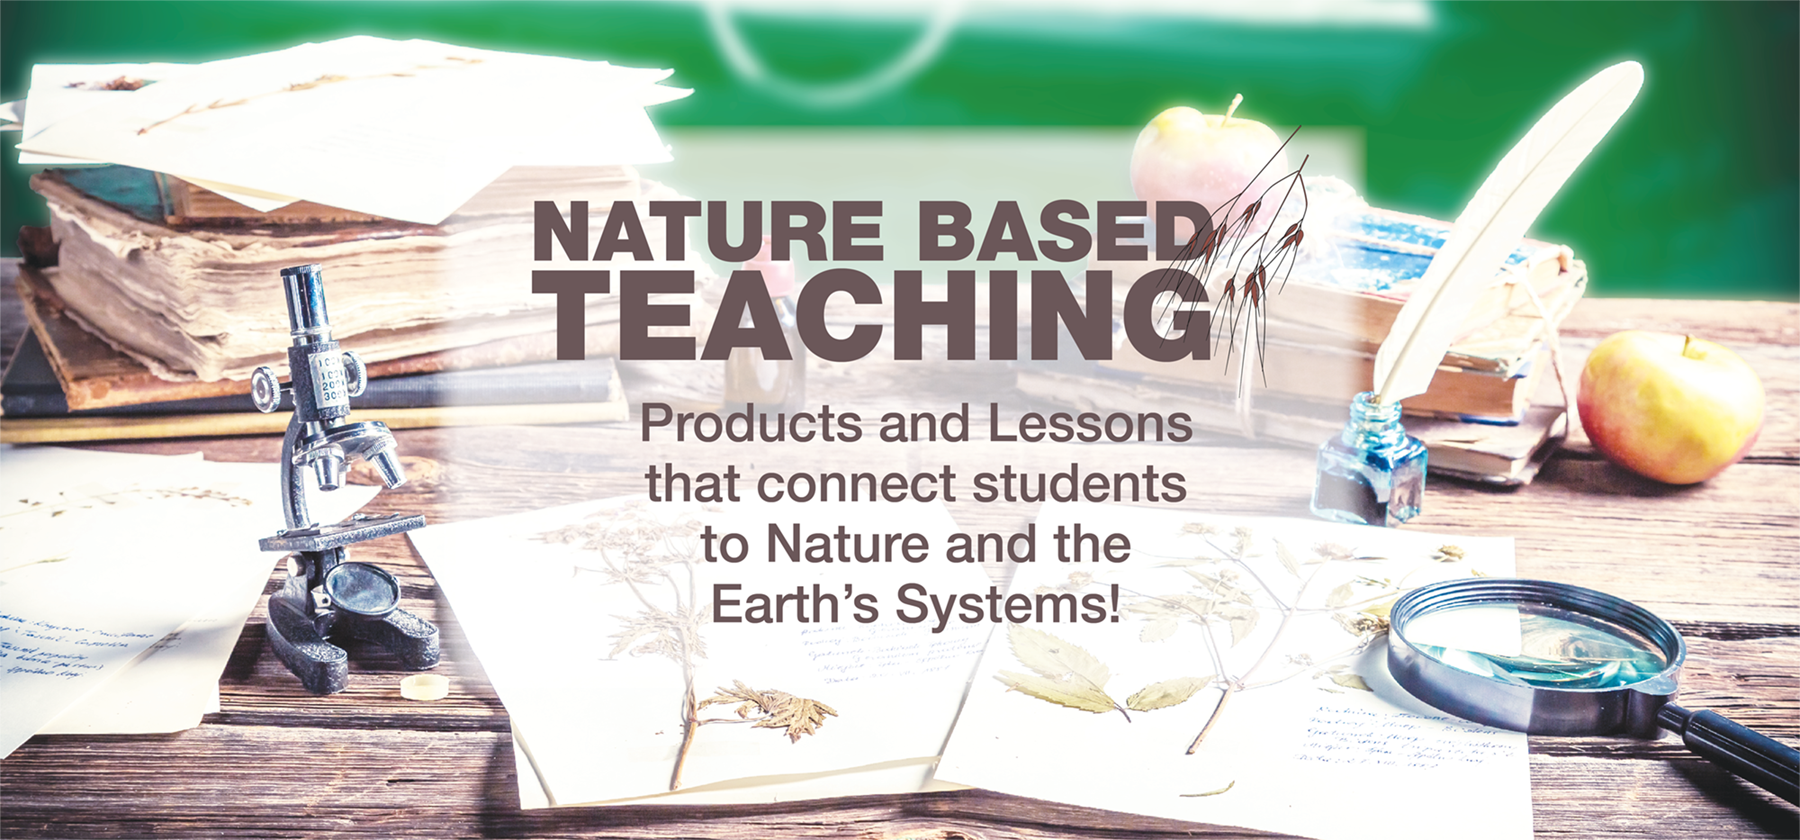 Nature Based Teaching Products and Lessons